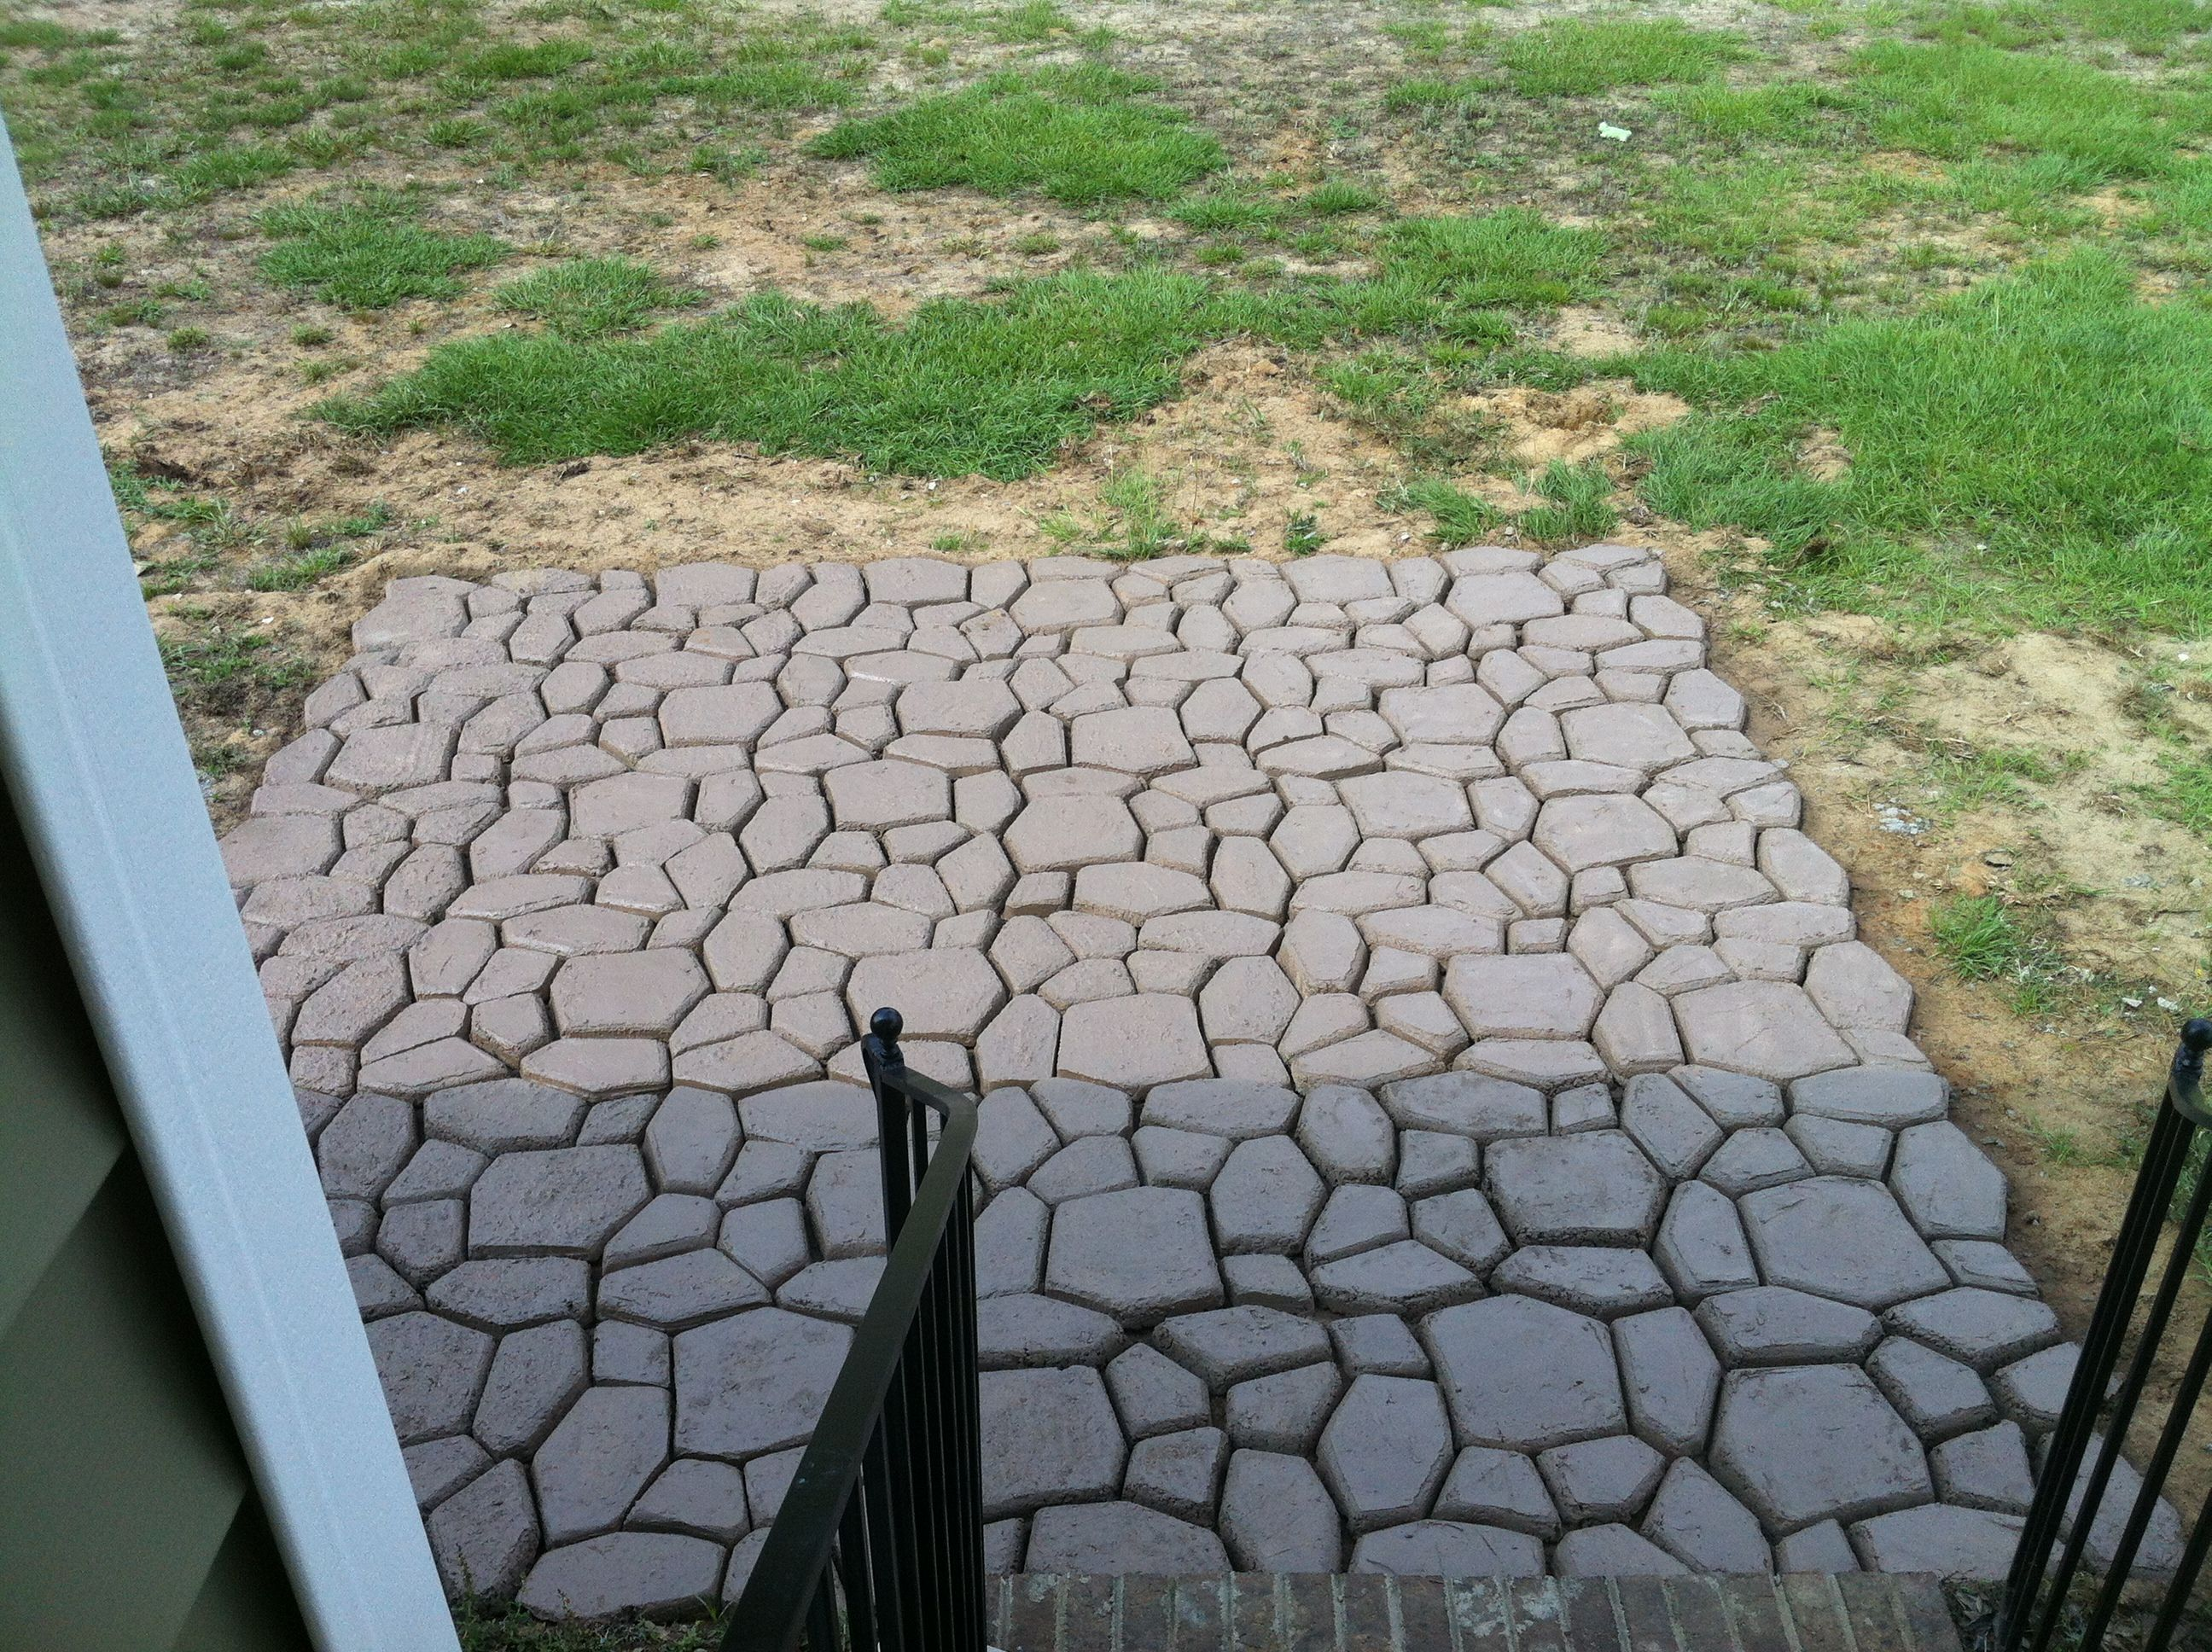 Diy patio made from a country stone quikrete mold and ...